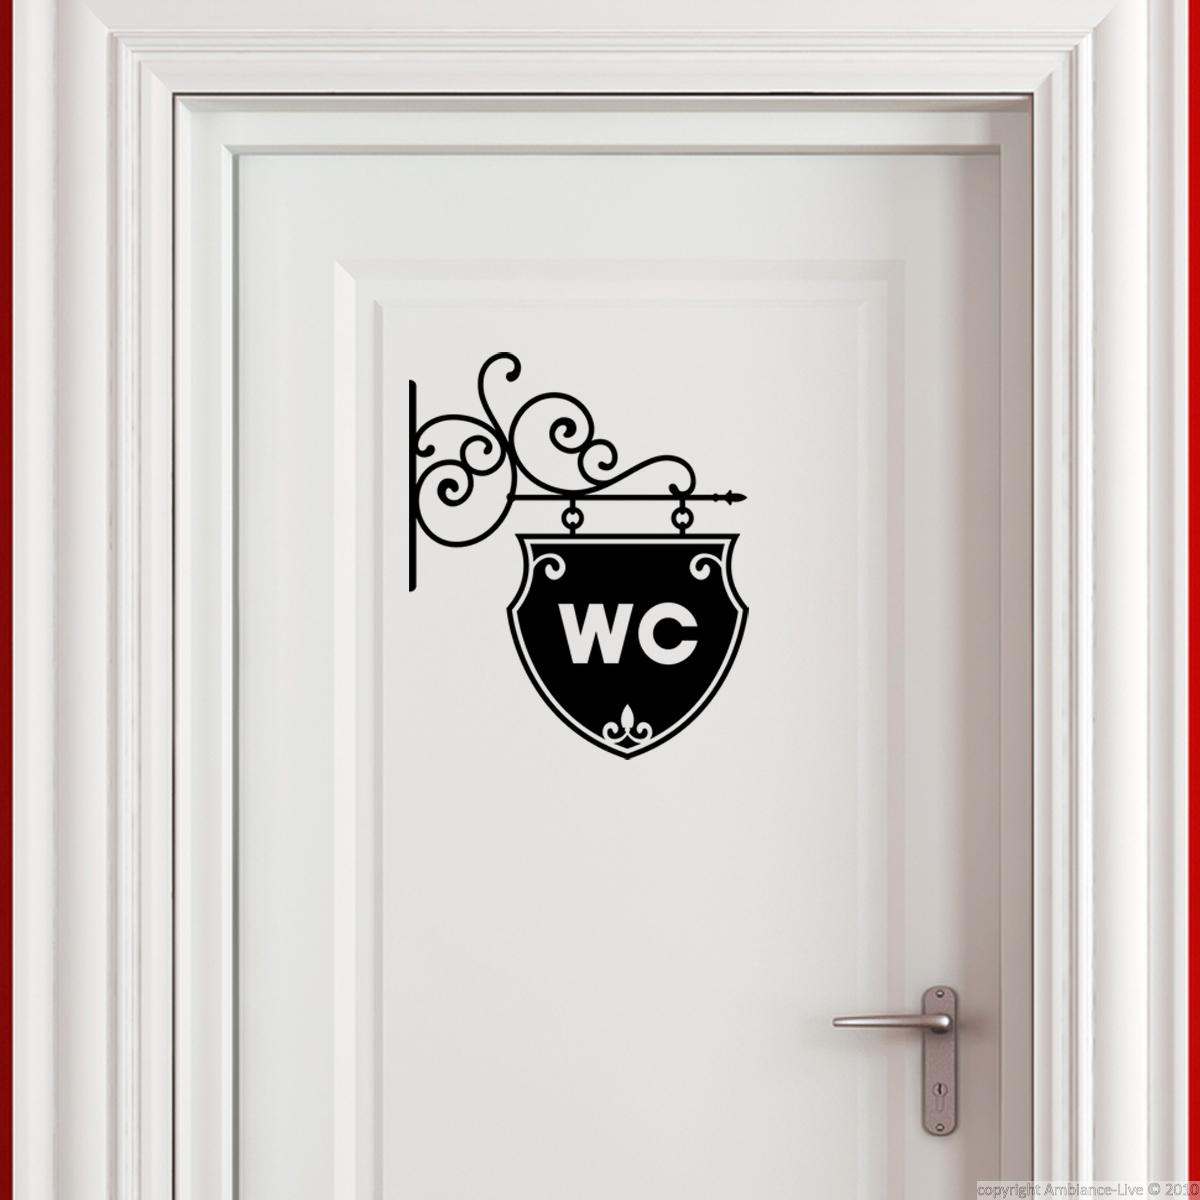 porte wc dessin stickers plaque de porte wc ref 1 bis